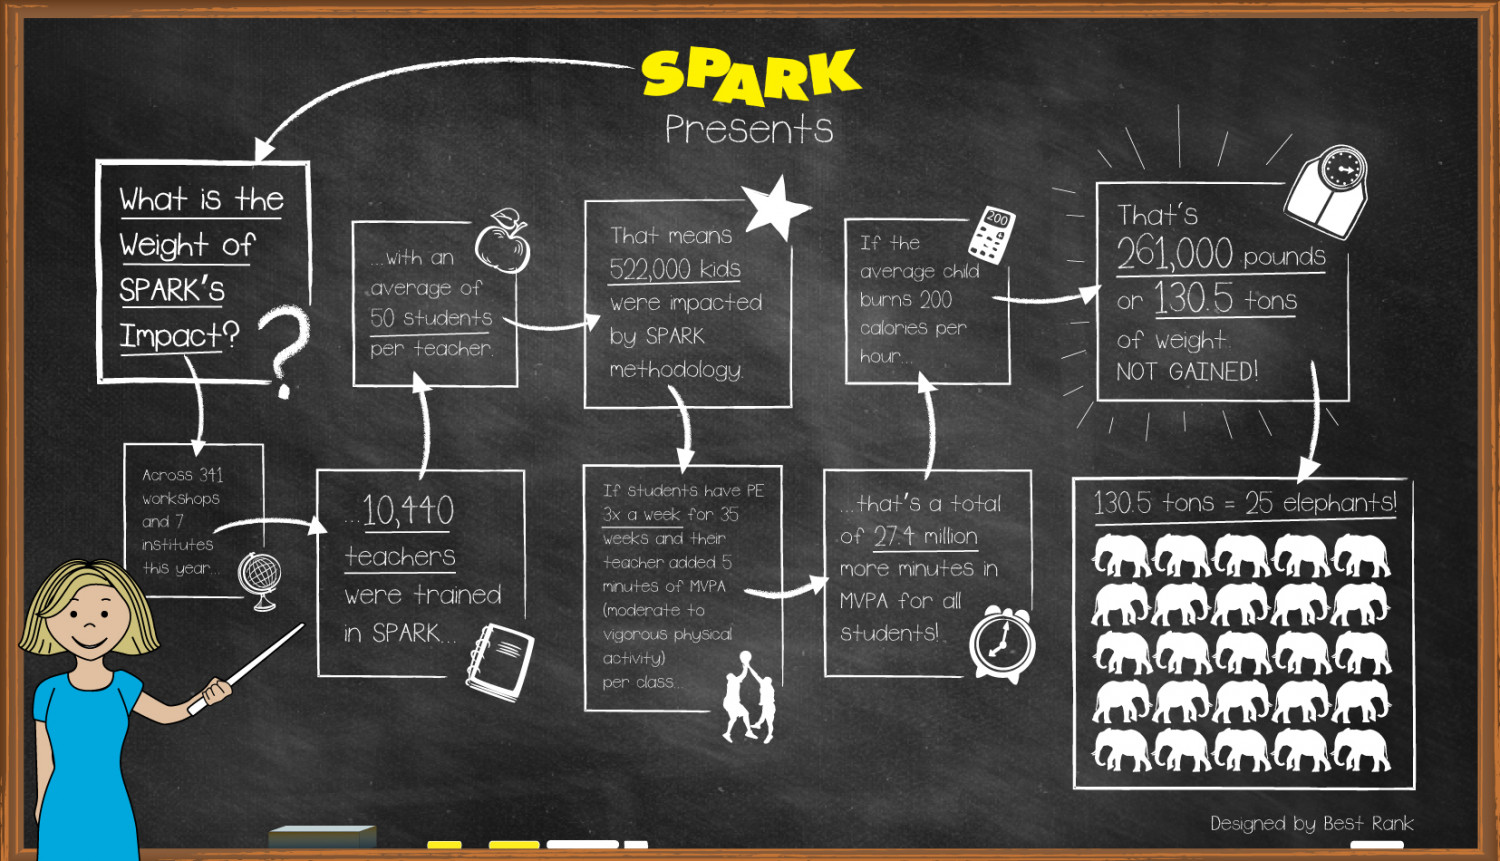 What is the Weight of Spark's Impact? Infographic